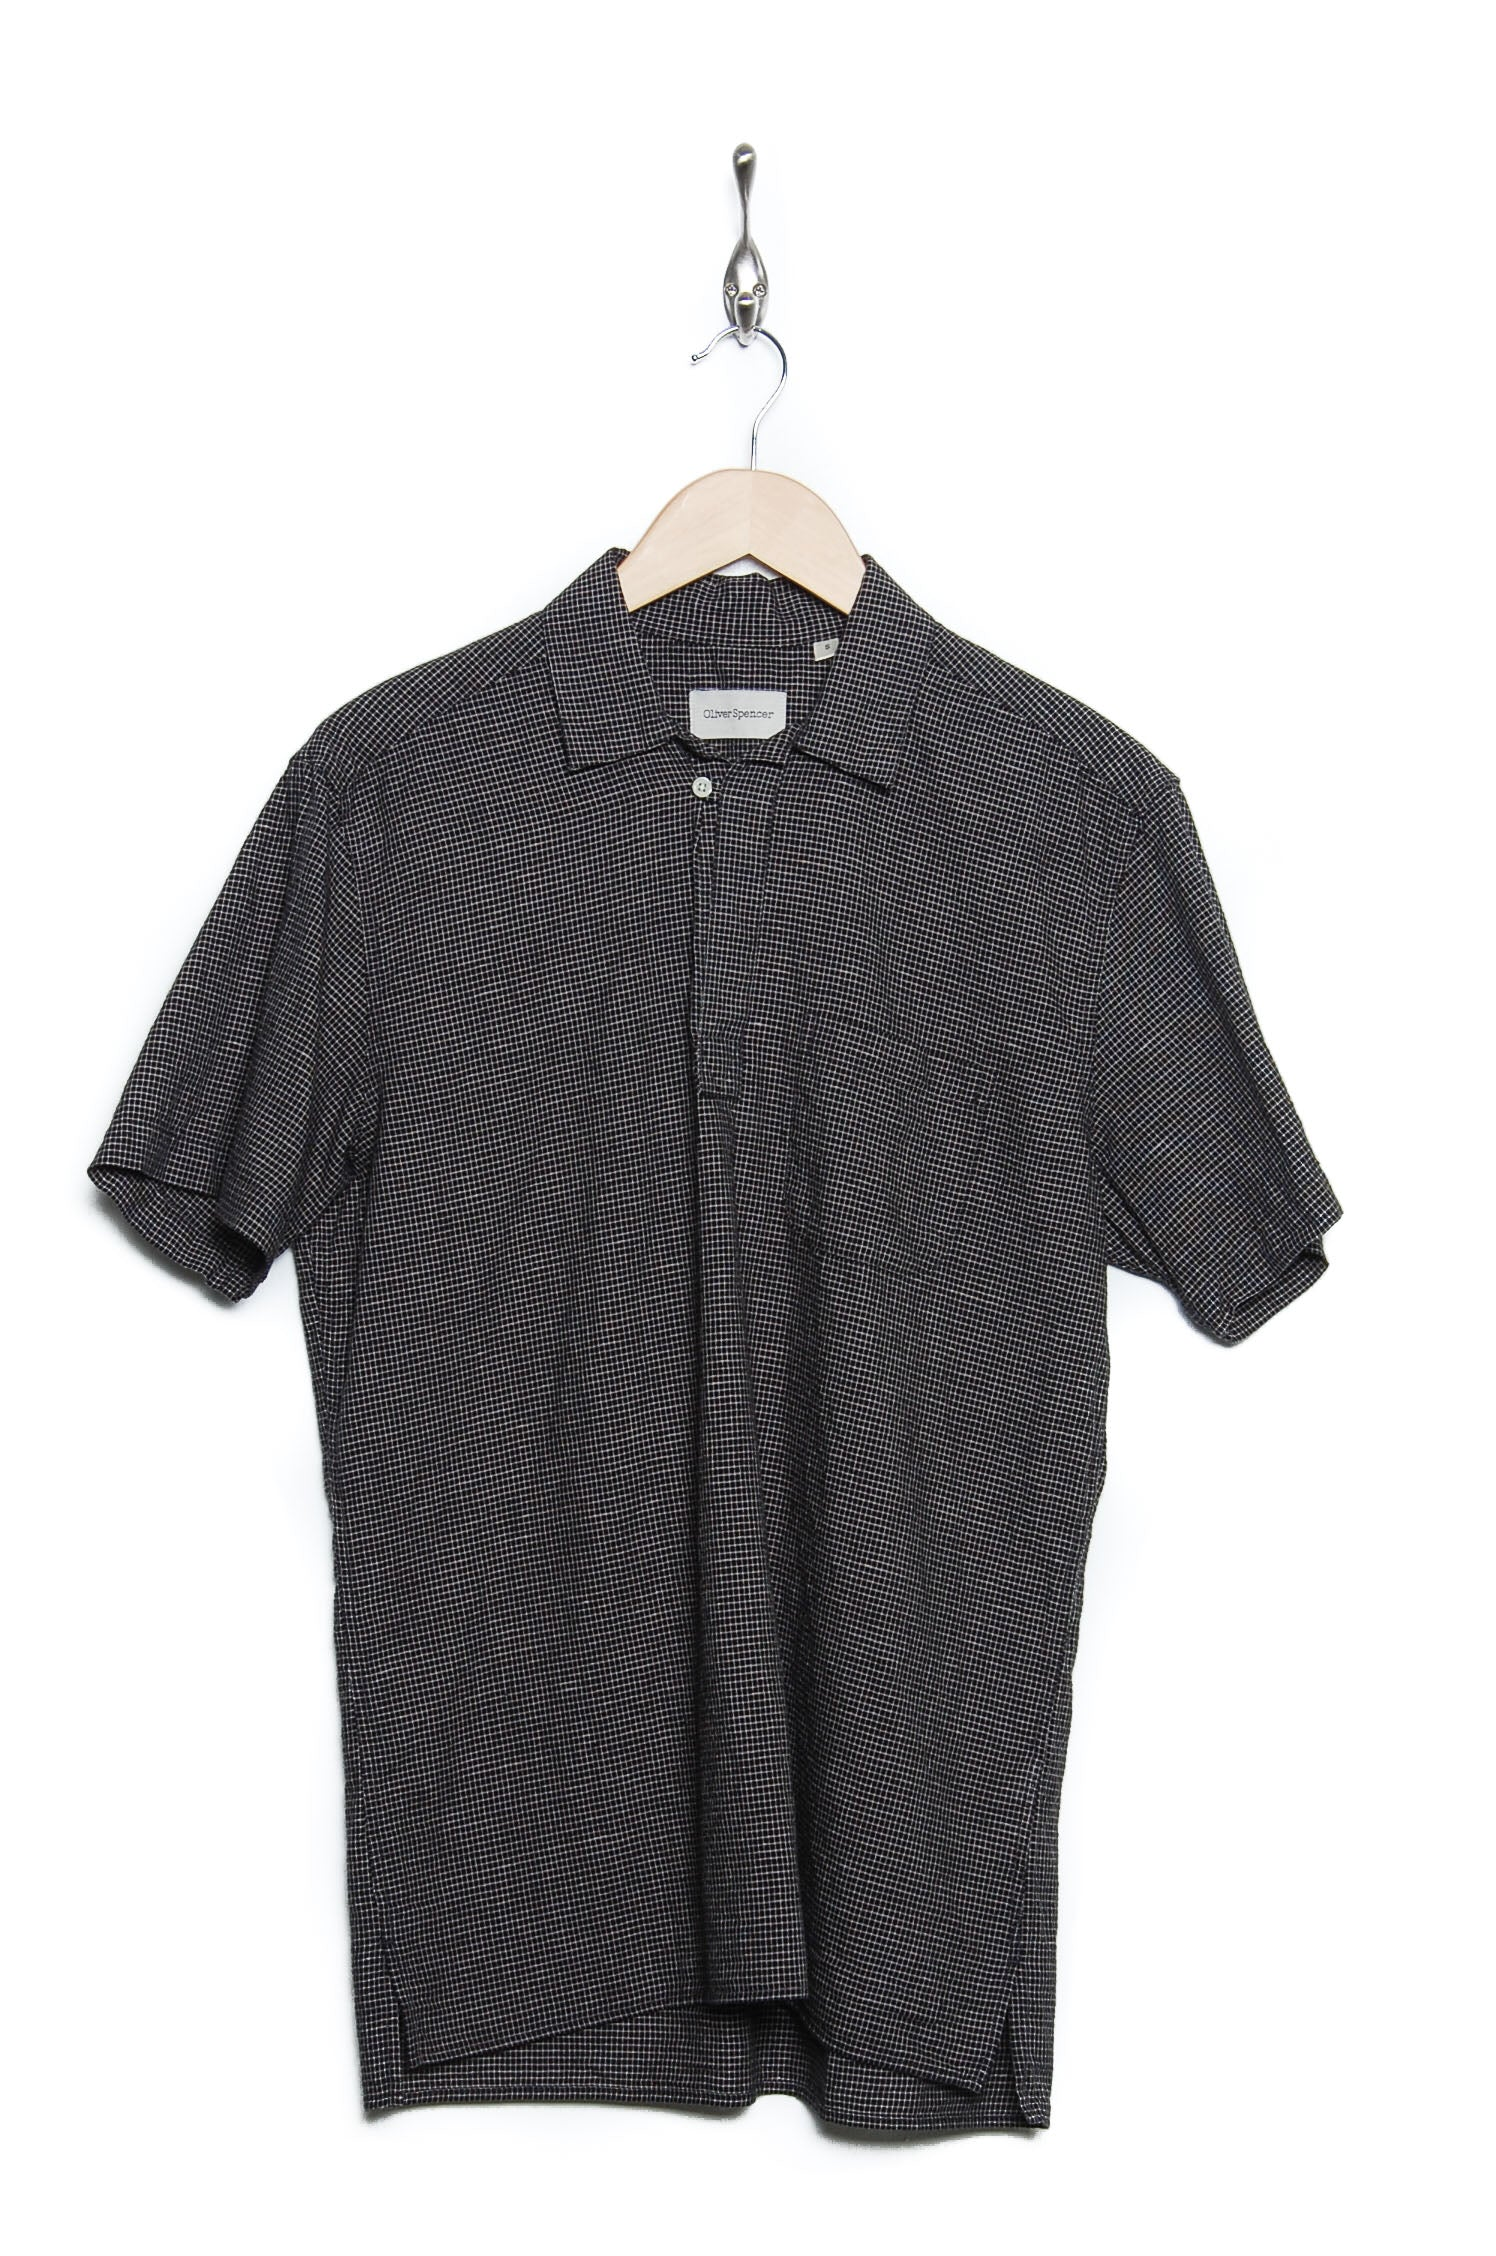 Oliver Spencer Yarmouth Shirt Kersley black